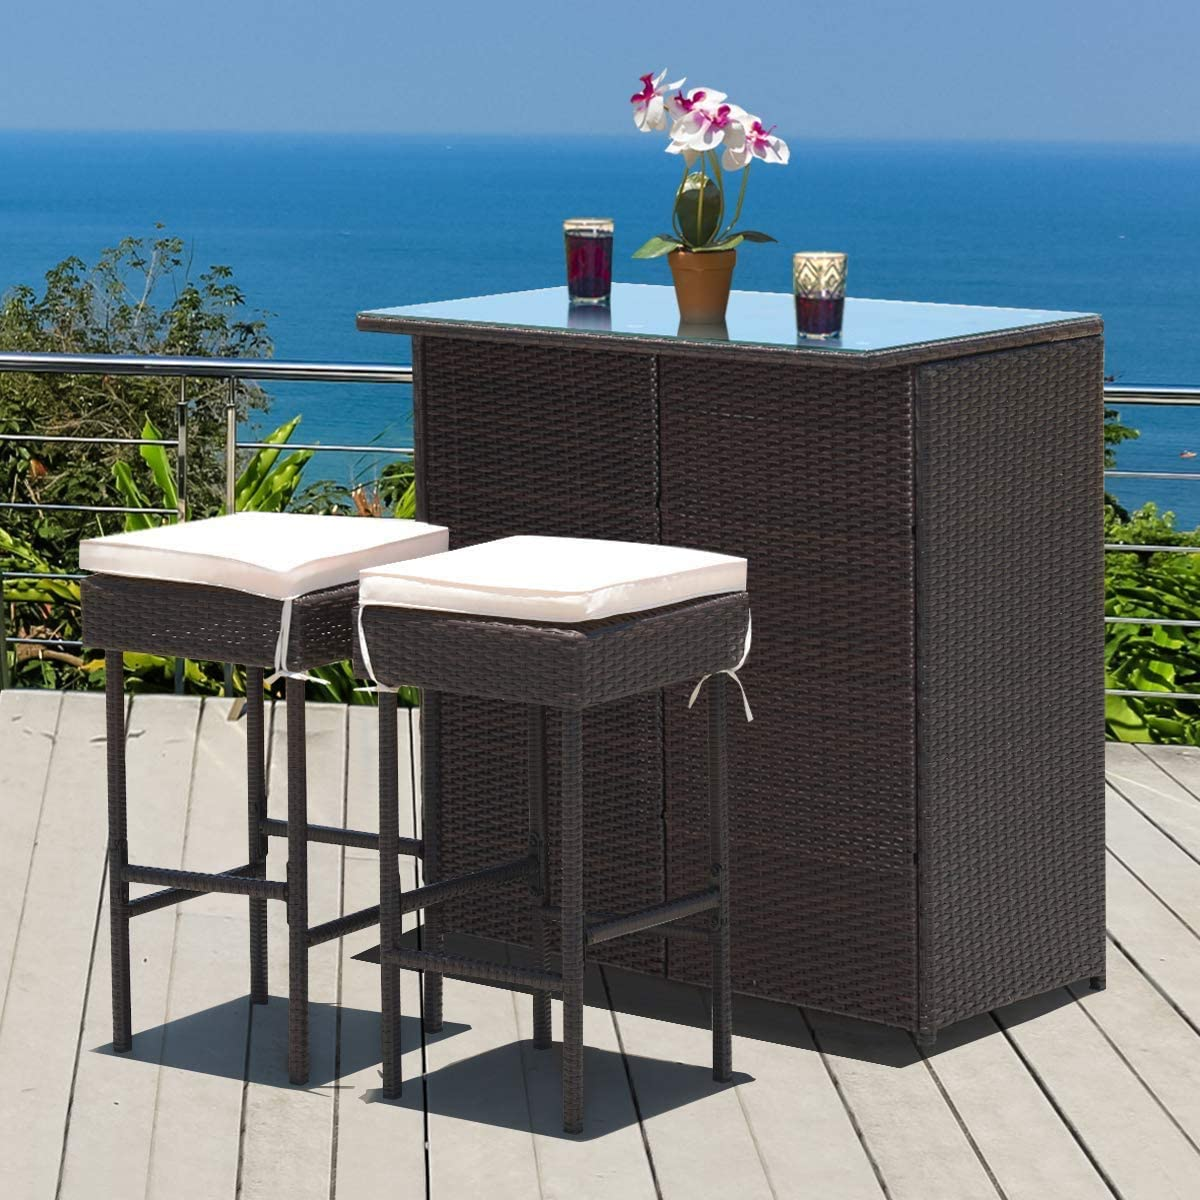 HAPPYGRILL Selling and Max 55% OFF selling 3pcs Patio Bar Set Rattan Wicker Stools Table